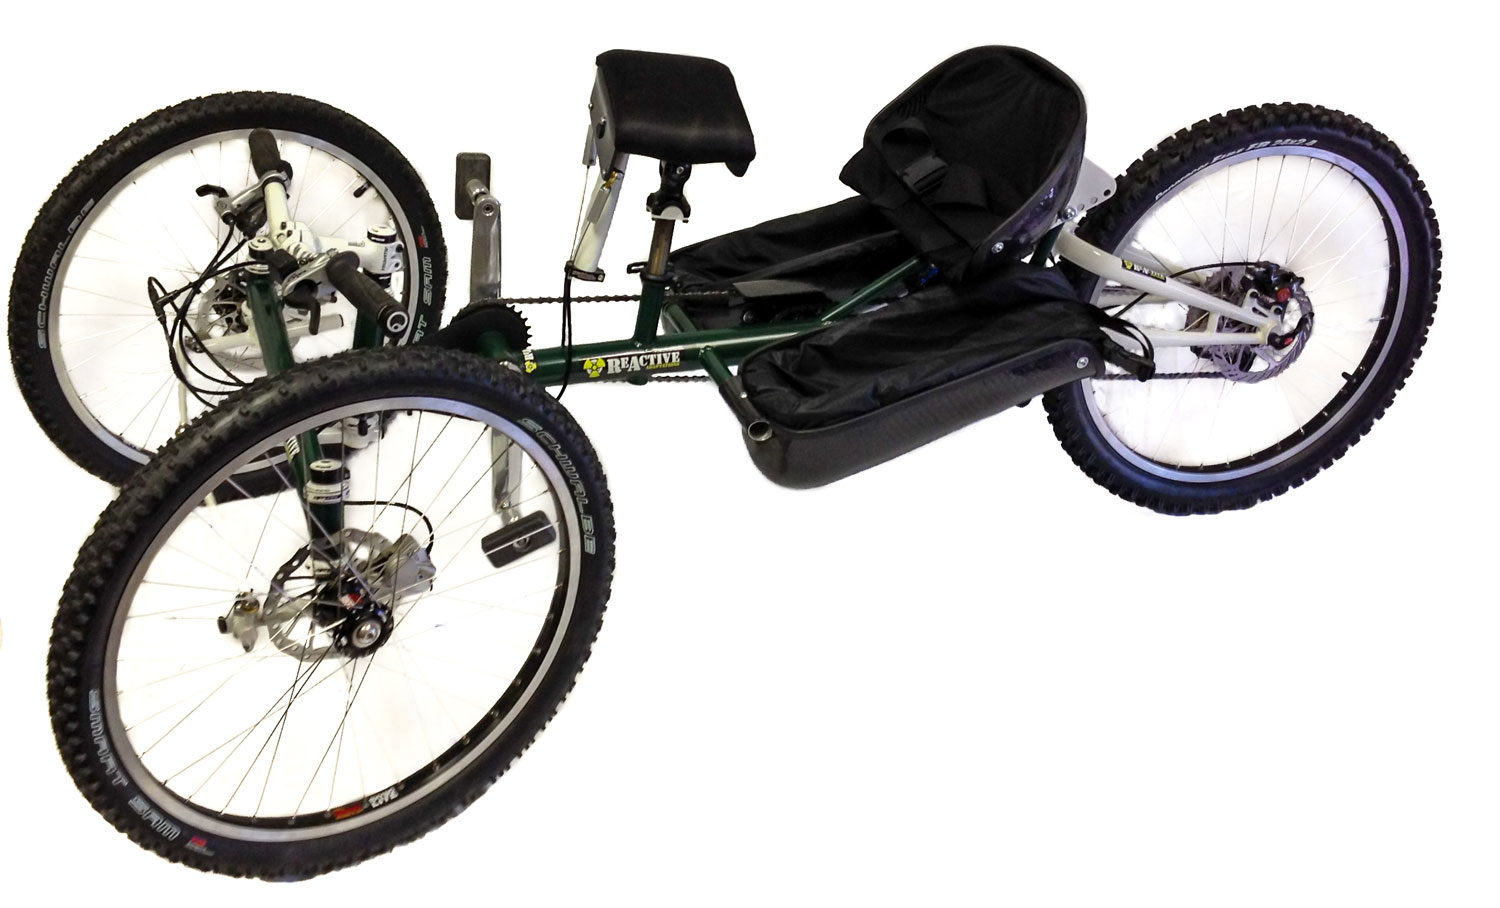 reactive adaptations bomber offroad handcycle